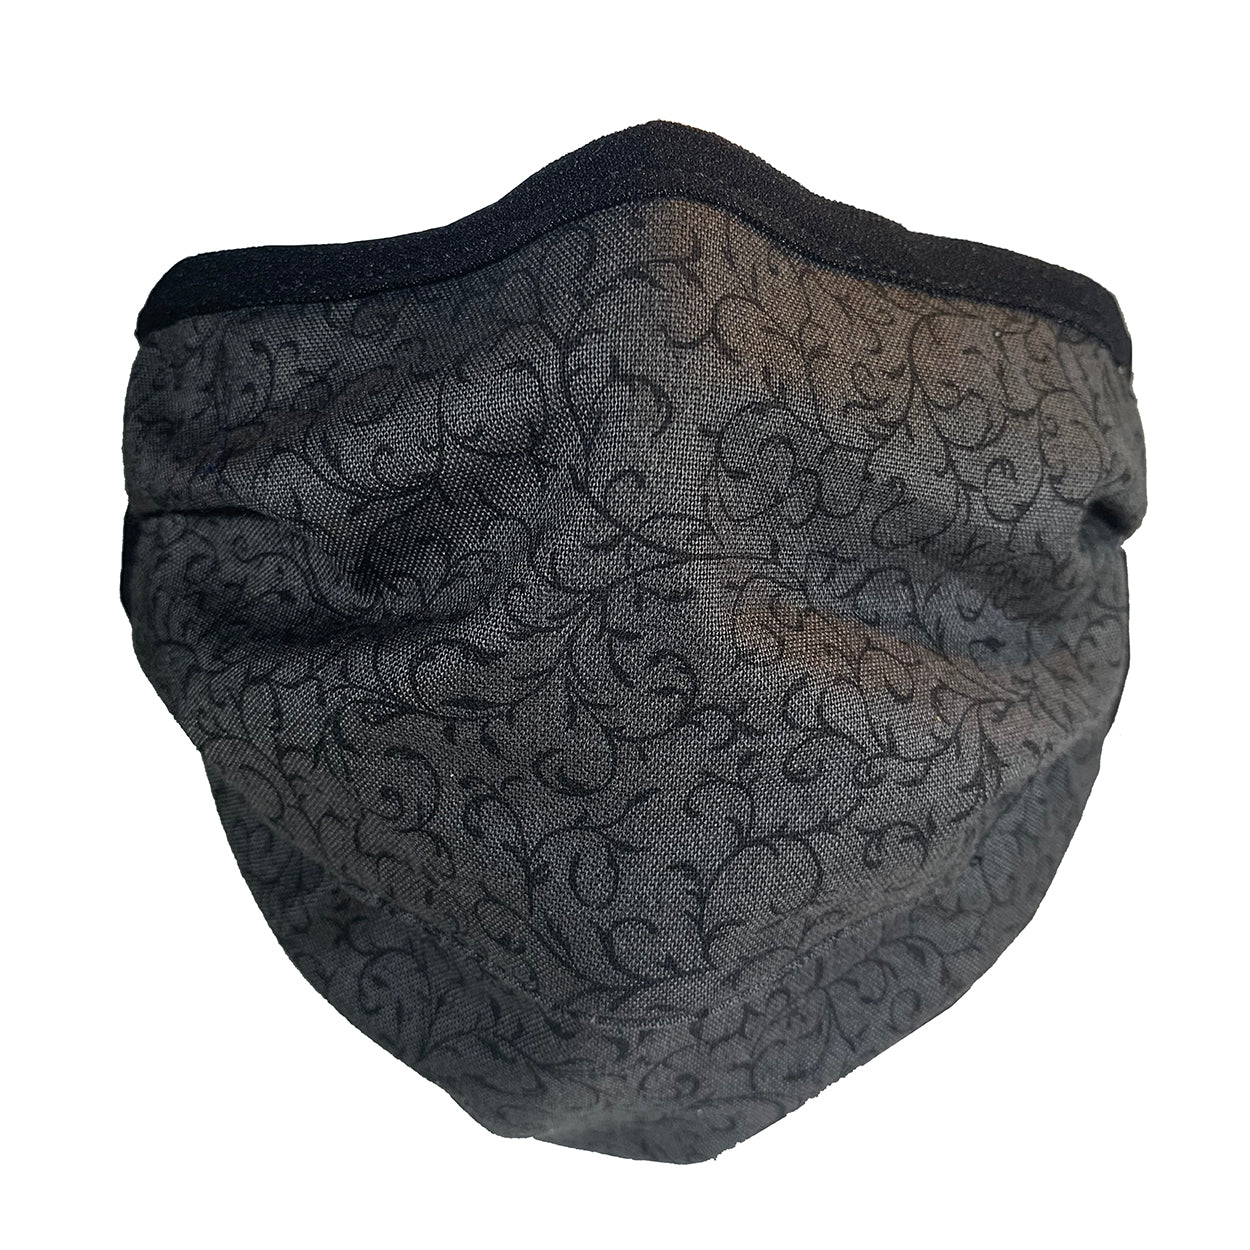 BRJ HANDSOME PAISLEY  Beverage / Cocktail mask - Face Mask